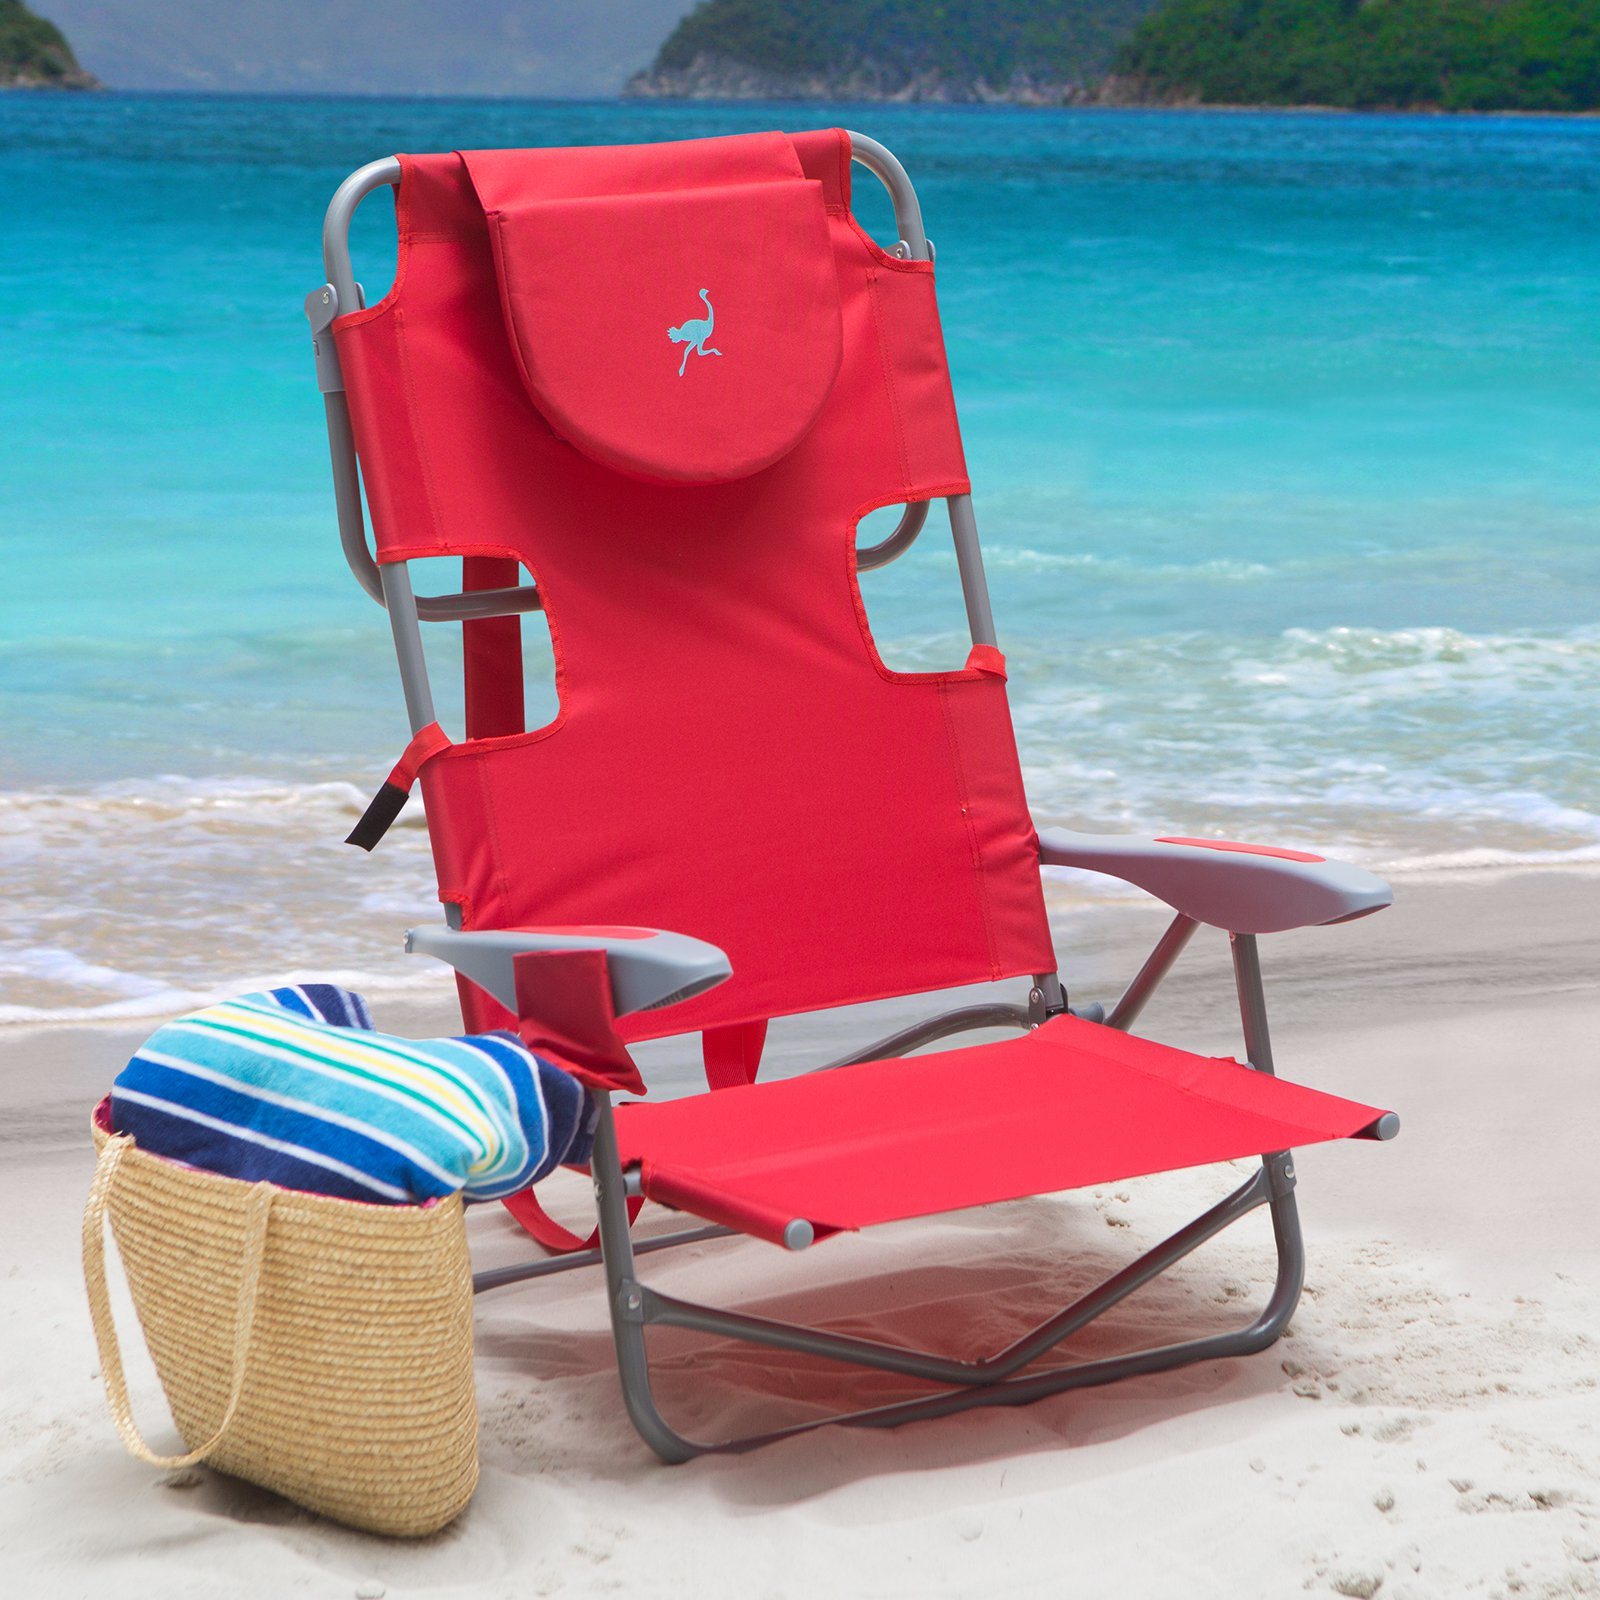 Pleasant Outdoor Ostrich On Your Back Backpack Beach Chair Red Inzonedesignstudio Interior Chair Design Inzonedesignstudiocom